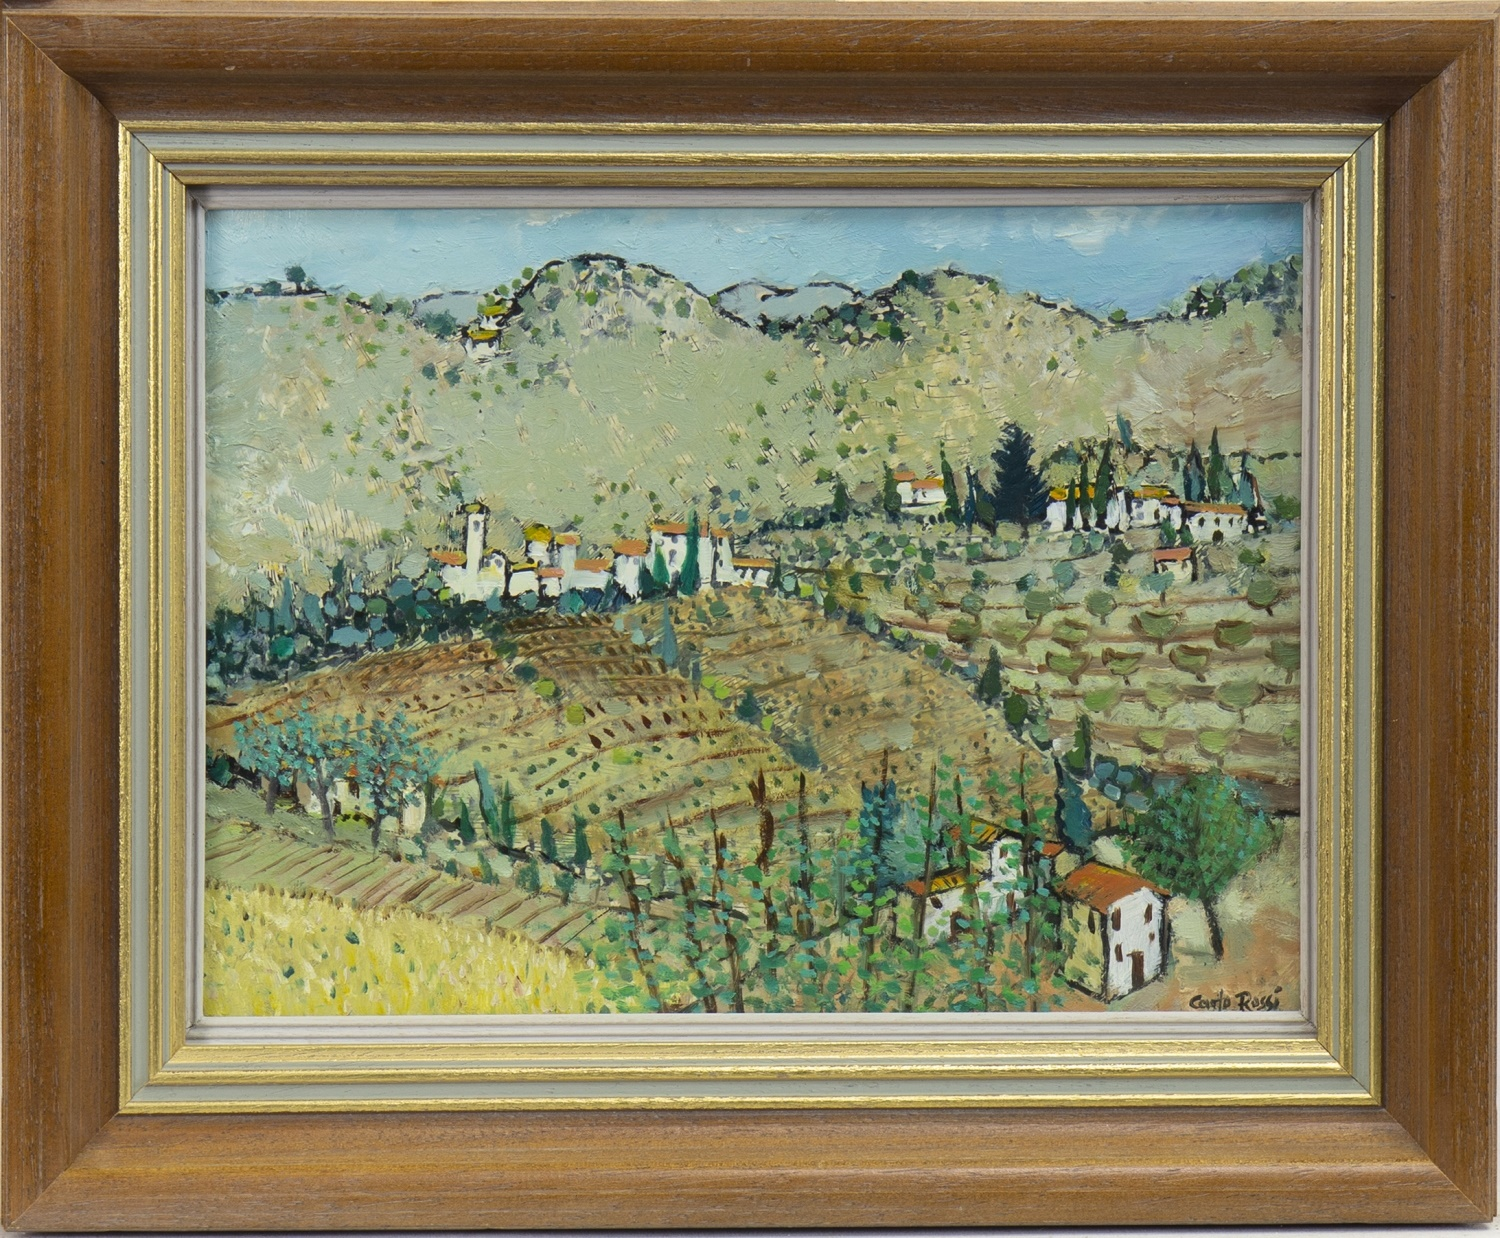 Lot 42 - TUSCAN LANDSCAPE, NEBBIANA, AN OIL BY CARLO ROSSI